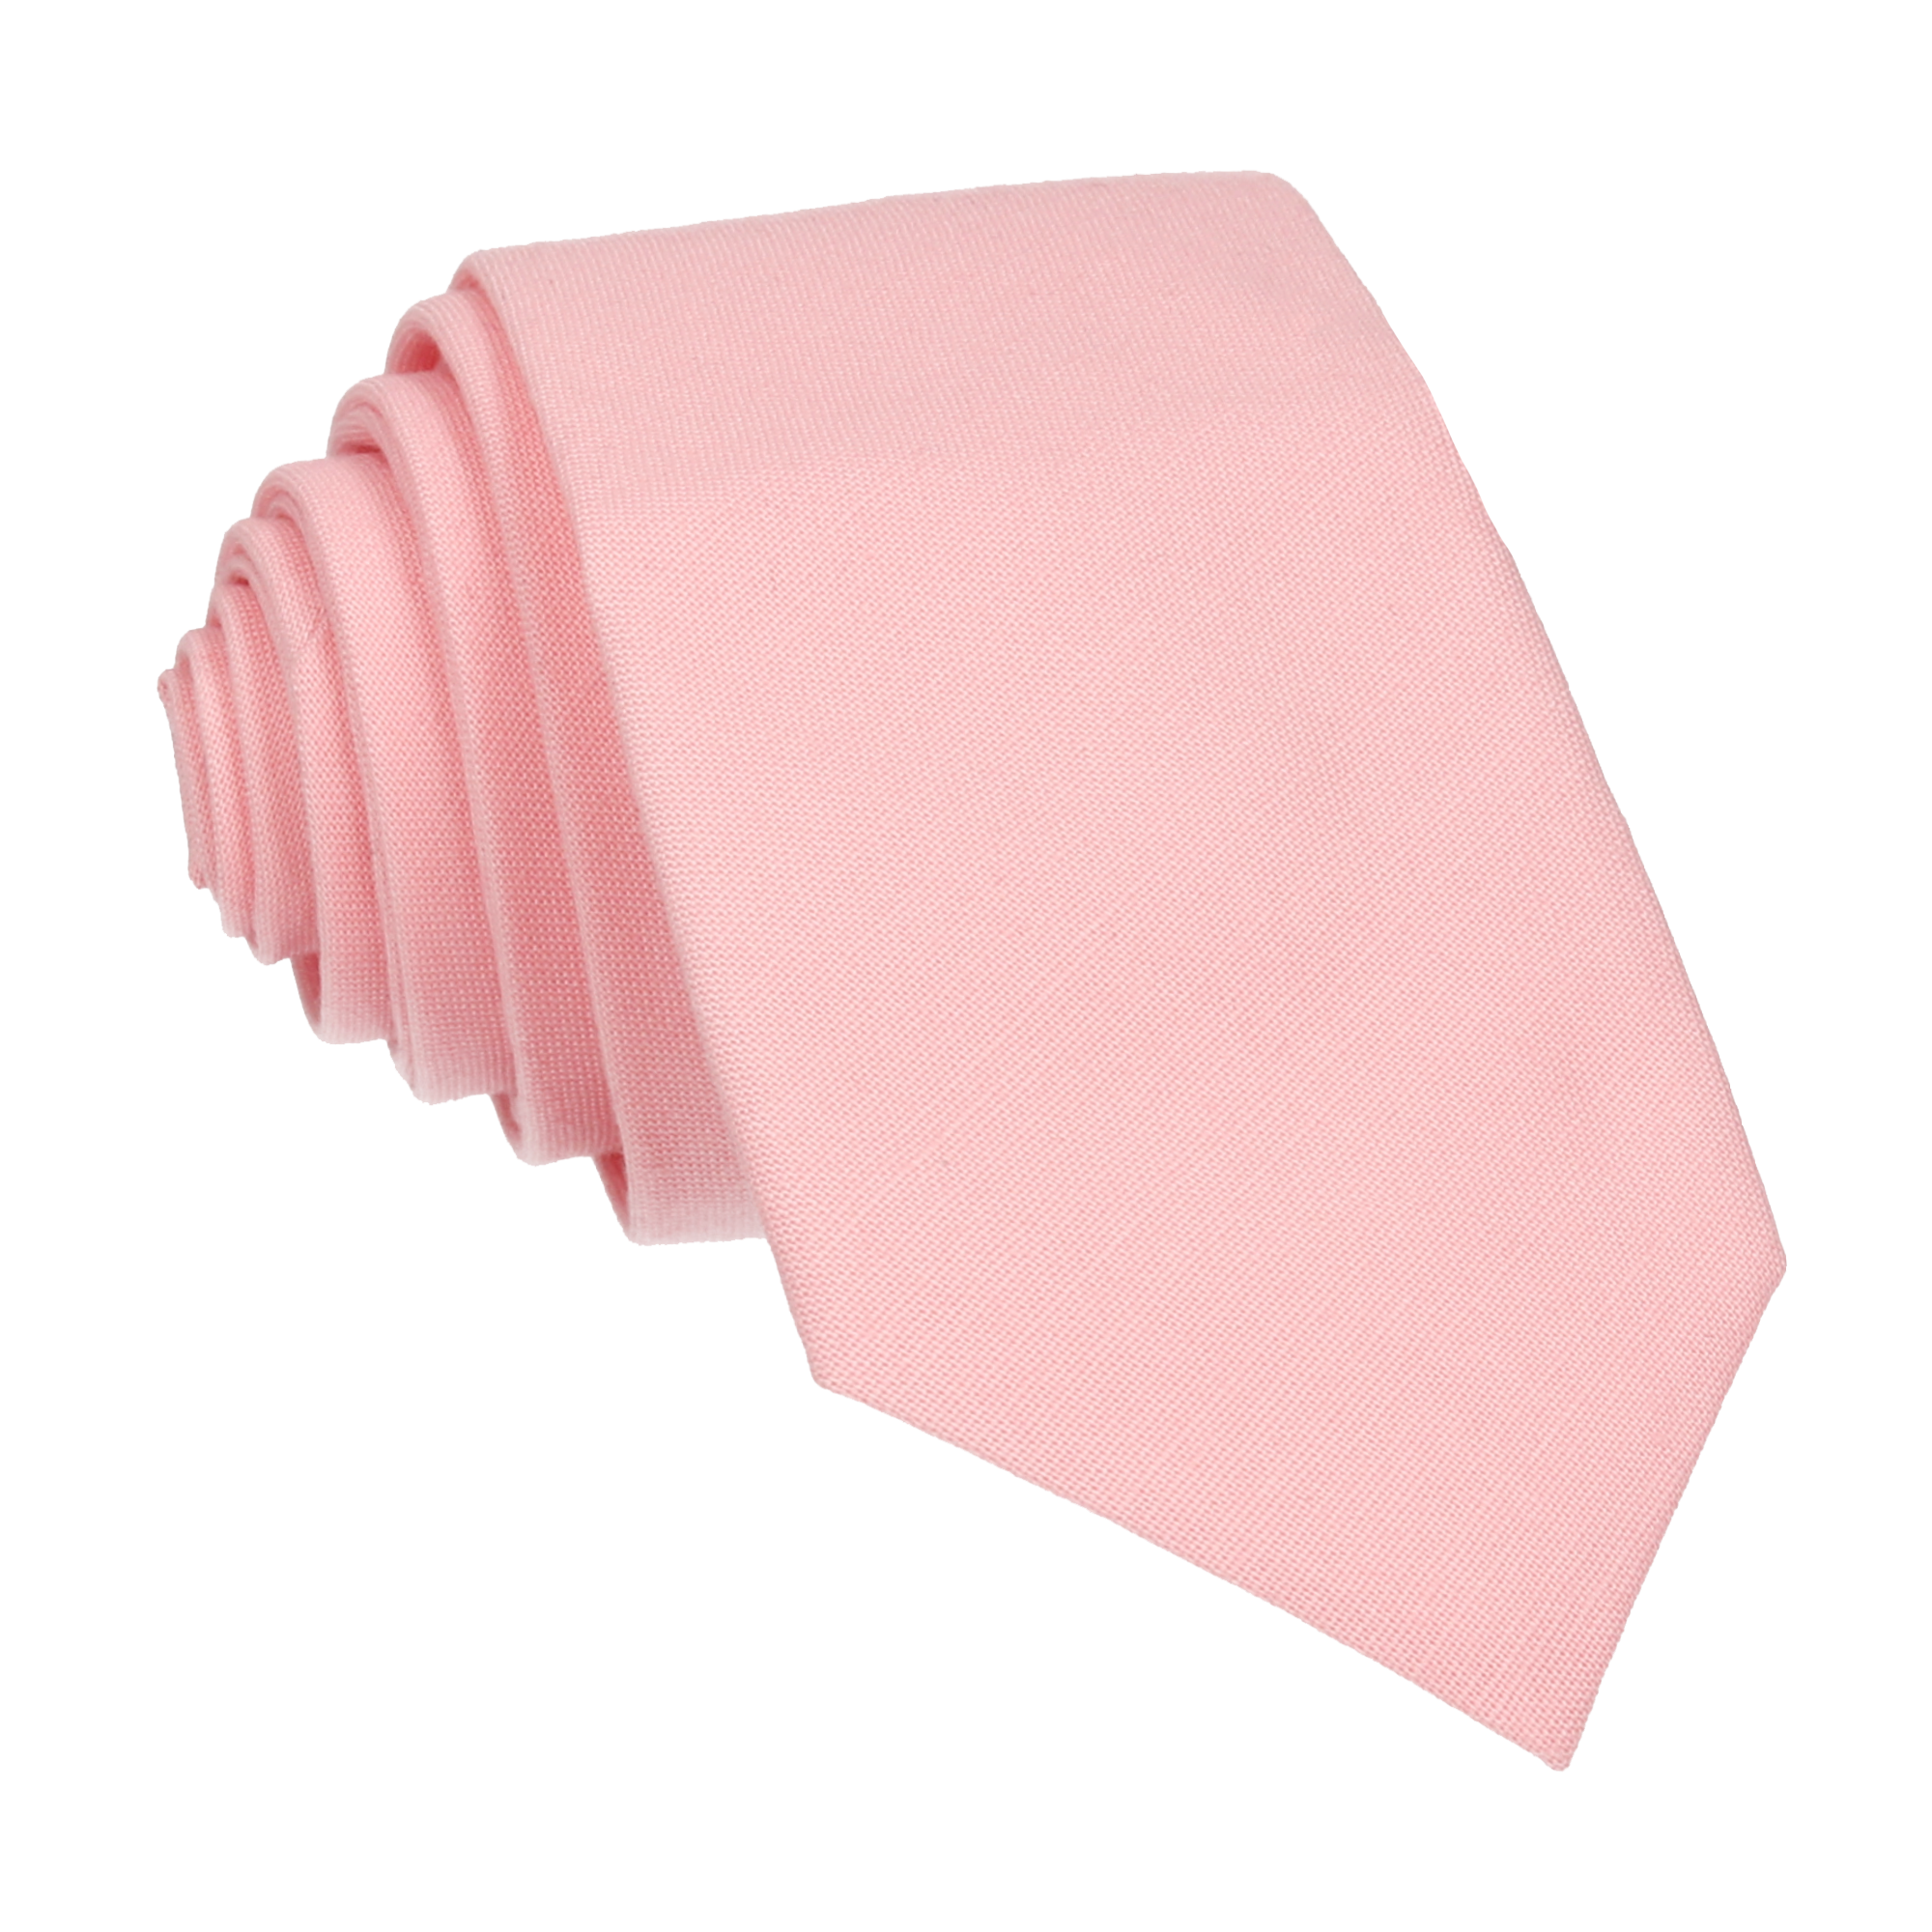 Cotton in Rose Quartz Tie